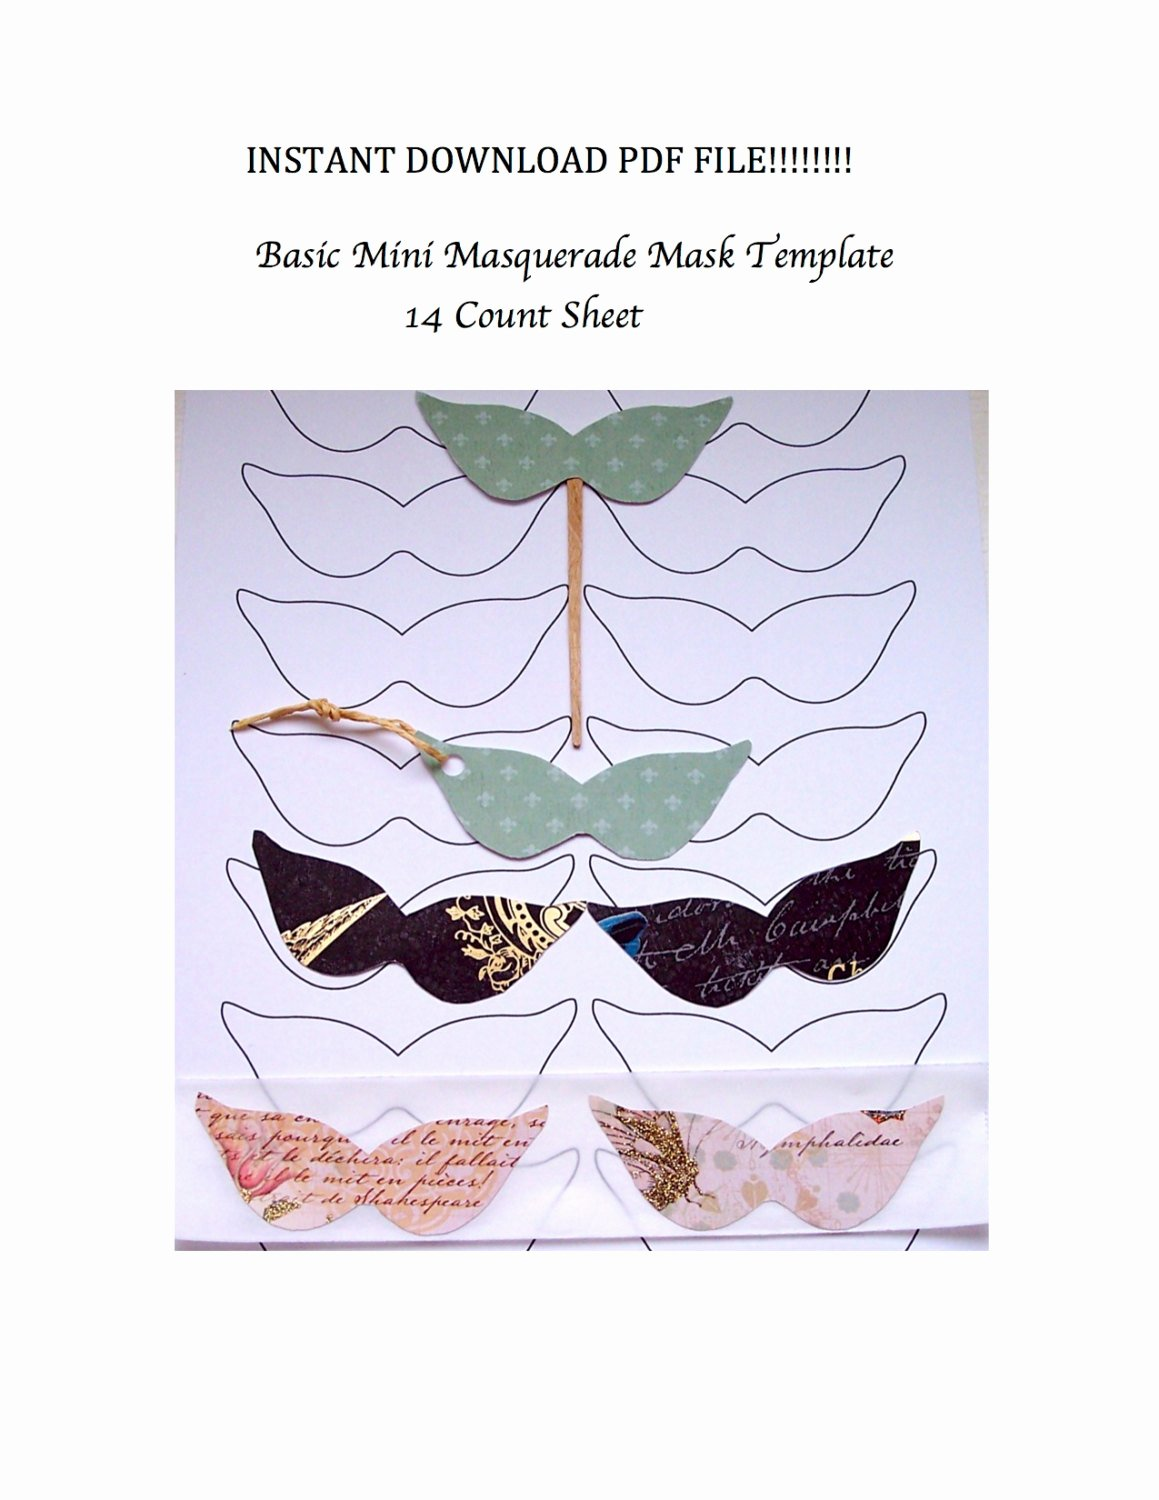 Diy Masquerade Mask Template New Instant Download Pdf Mini Masquerade Masks Template Diy